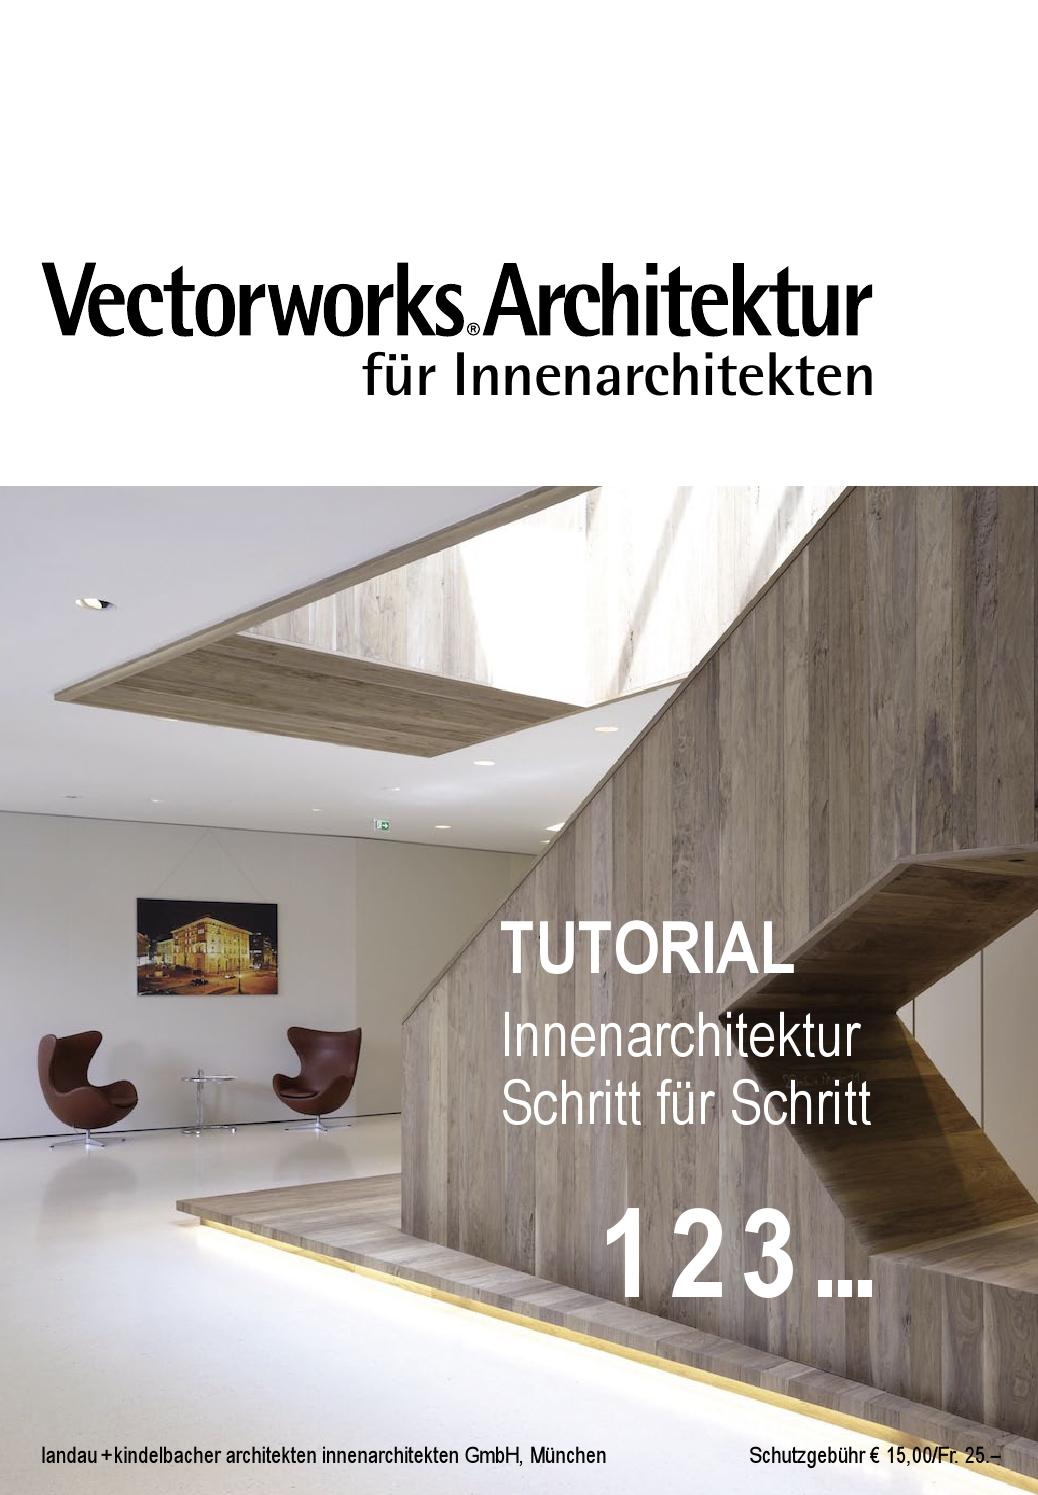 Tutorial innenarchitektur by gianpas issuu for Innenarchitektur lernen